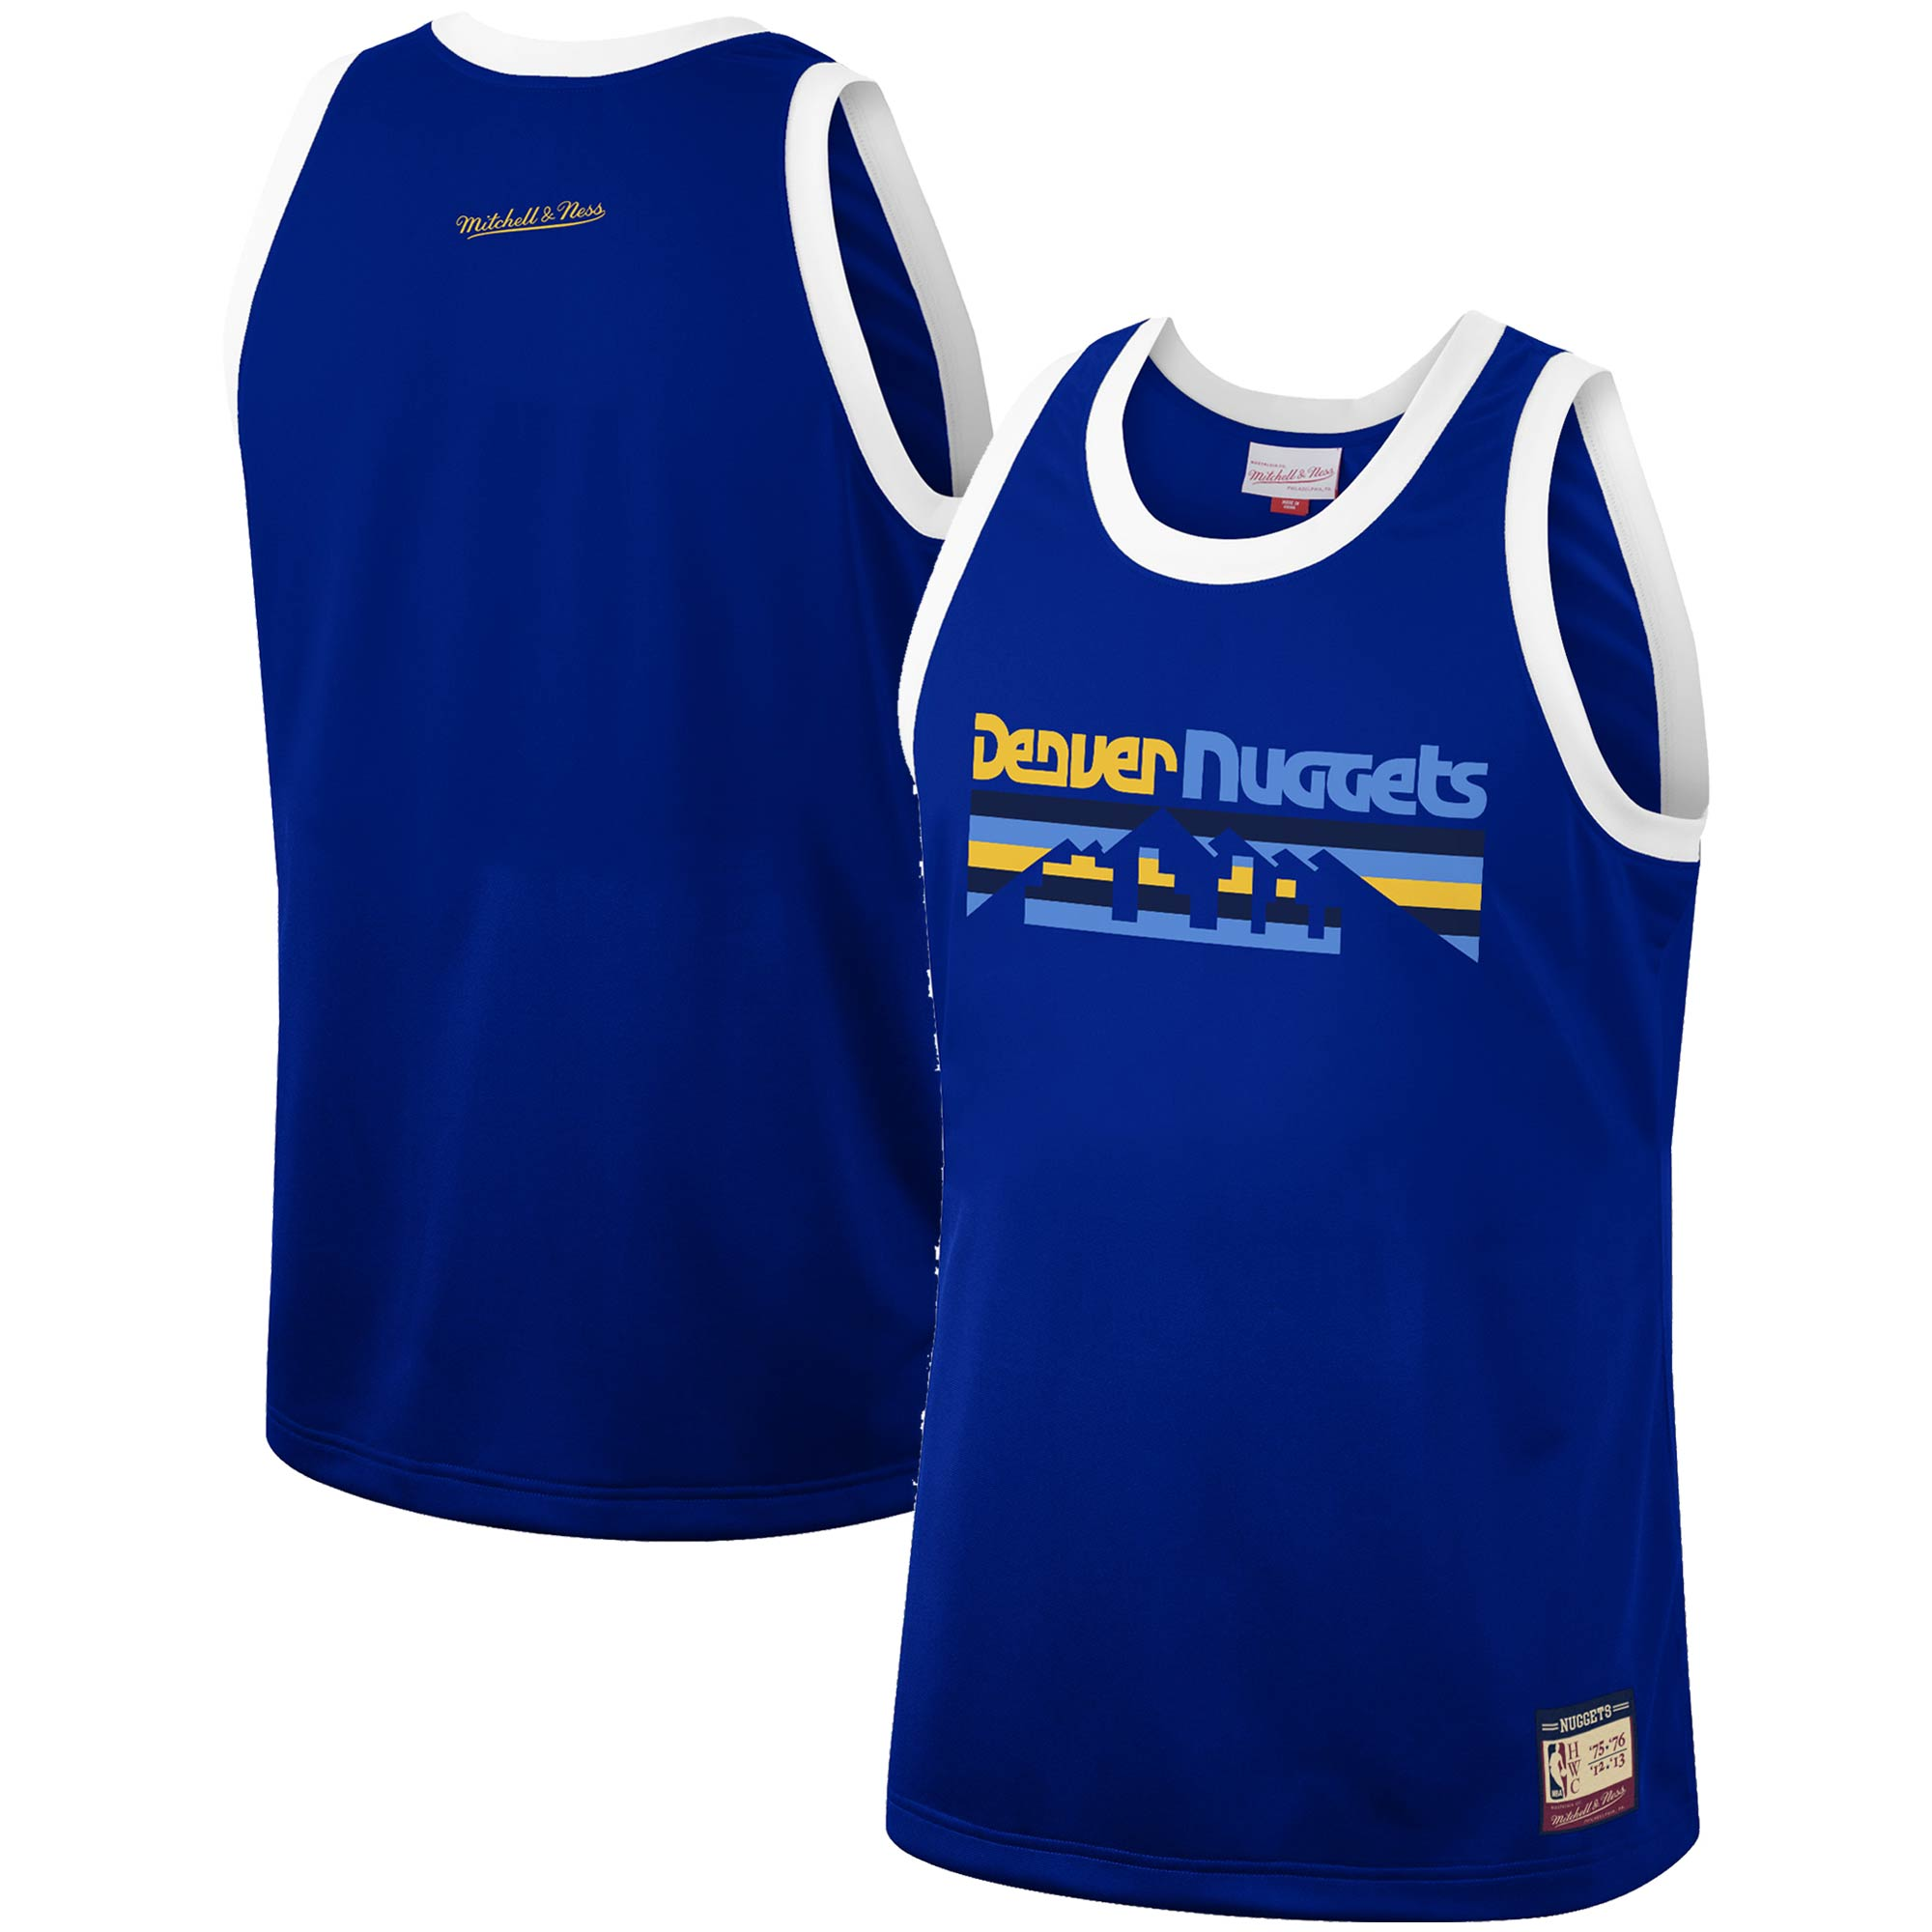 Denver Nuggets Mitchell & Ness Hardwood Classics Team Heritage Fashion Jersey - Royal